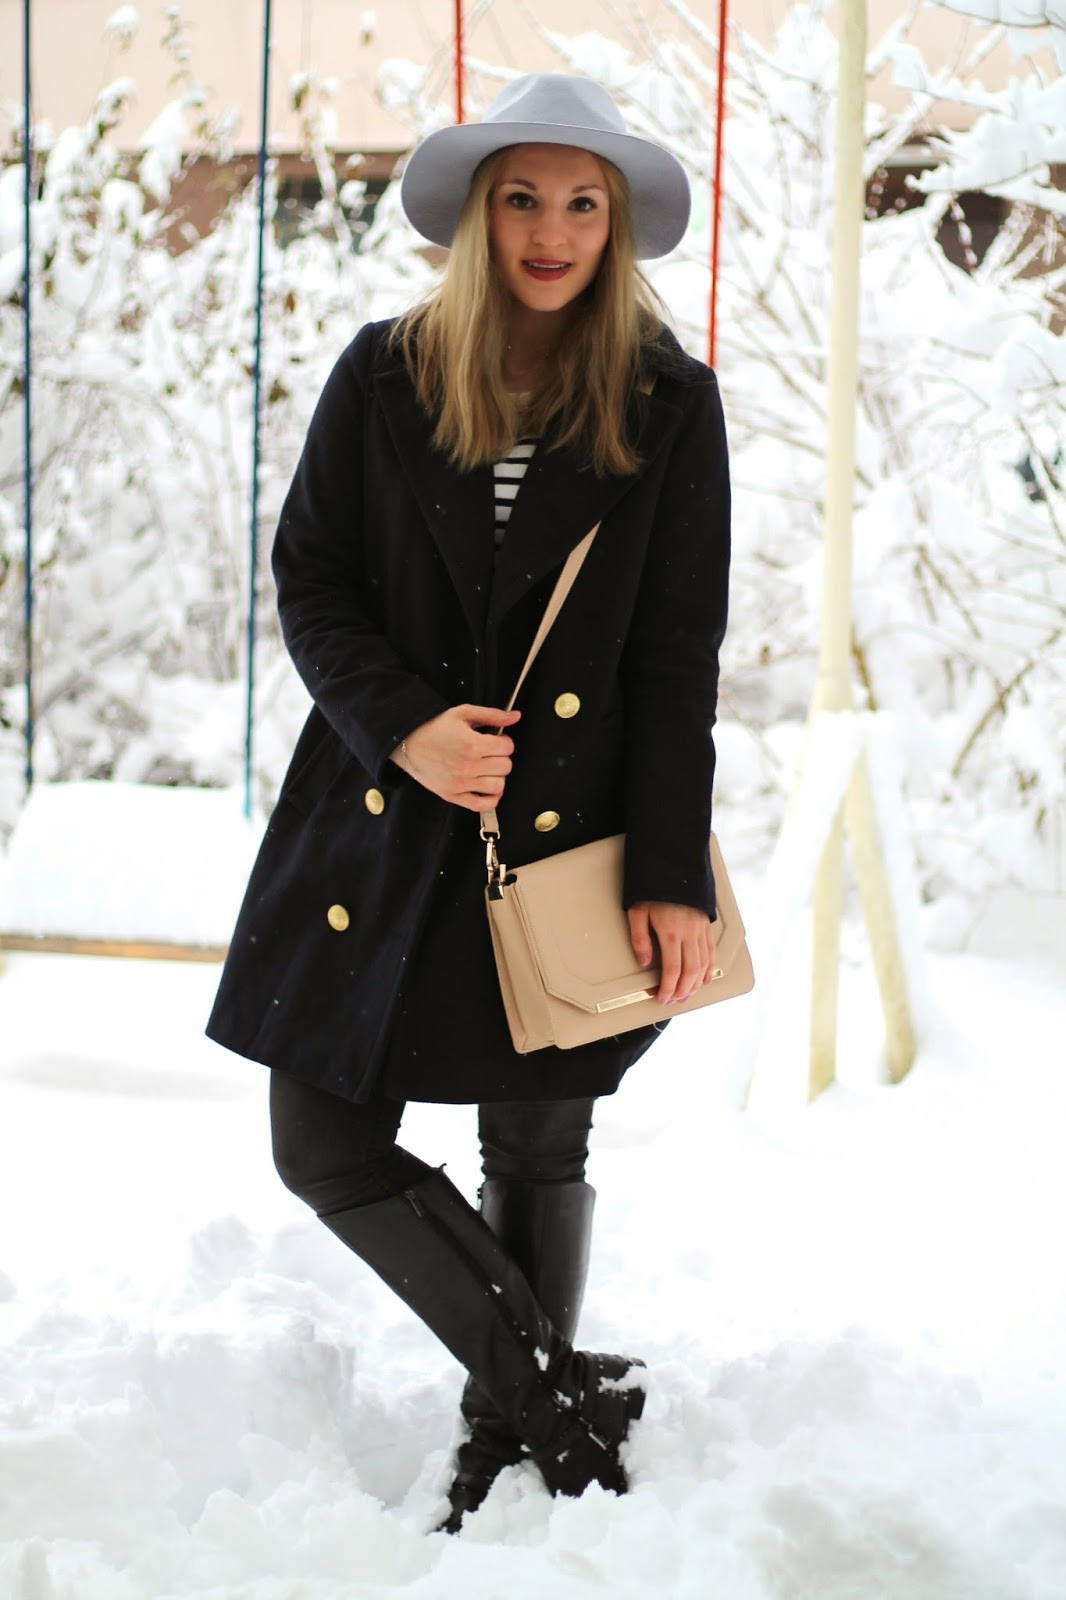 Fashionblogger Austria / Österreich / Deutsch / German / Kärnten / Carinthia / Klagenfurt / Köttmannsdorf / Winter Look / Classy / Edgy / Winter / WInter Style 2014 / Winter Look / Fashionista Look / Streetstyle Klagenfurt Vienna Wien Austria / /Winter Outfit / Maritim Marineblauer Mantel Oversize Blue Coat New Yorker / Sweater Striped Black White Schwarz weiß gestreifter Sweater Forever 21 / grauer Hut grey Hat asos / Crossbody Bag Orsay Umhängetasche Orsay beige / Grey Jeans REview Grau / Stiefel Boots Black Leather Schwarzer Leder Humanic //